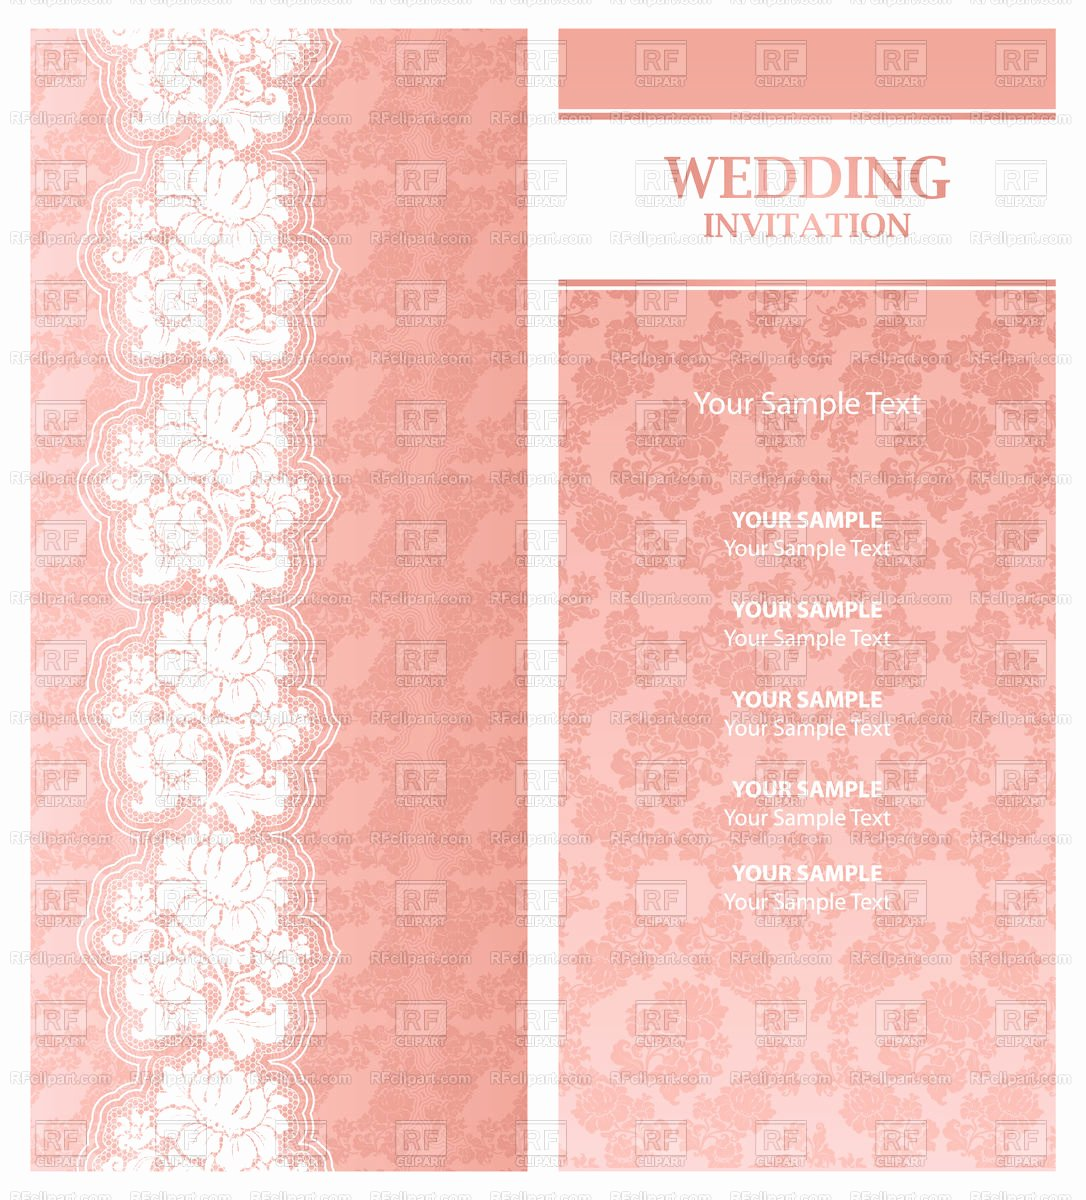 Lace Wedding Invitation Template Fresh Pink Wedding Invitation Template with Floral Lace Vector